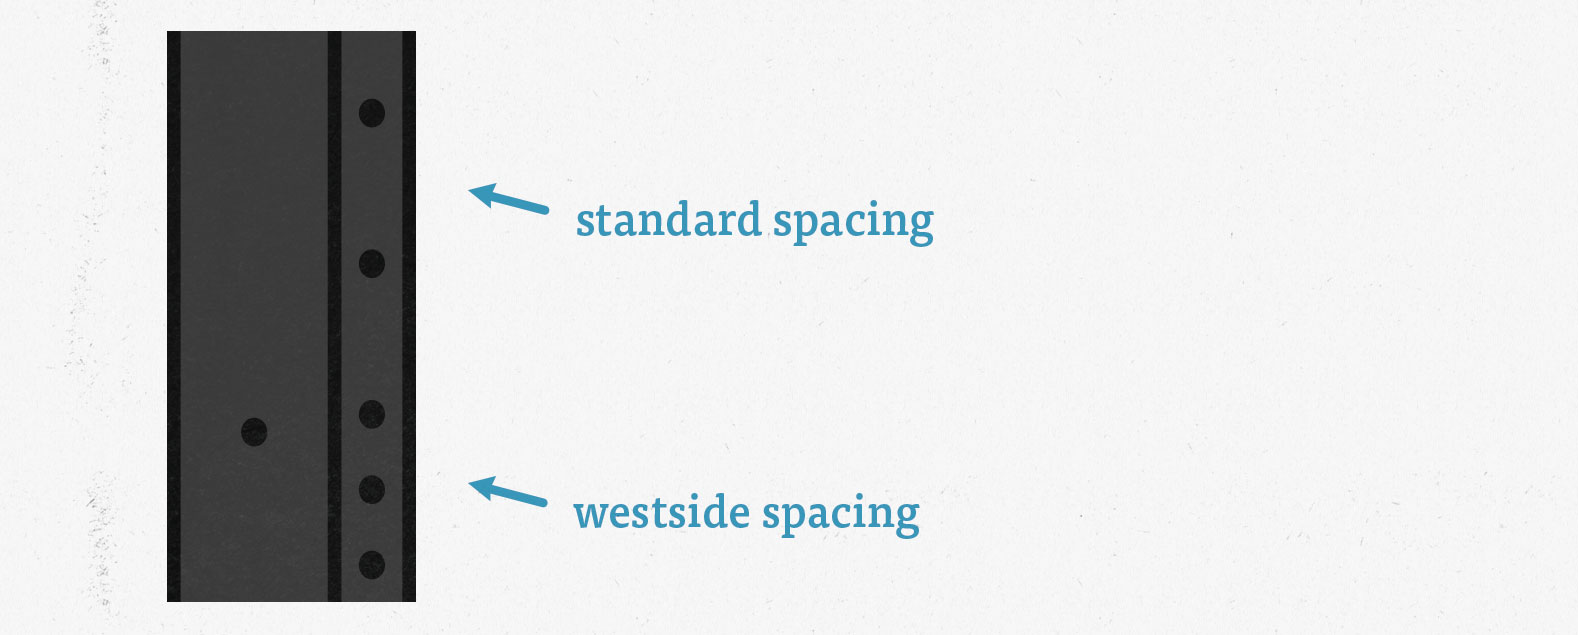 These are the types of hole spacing - the standard spacing and the westside spacing